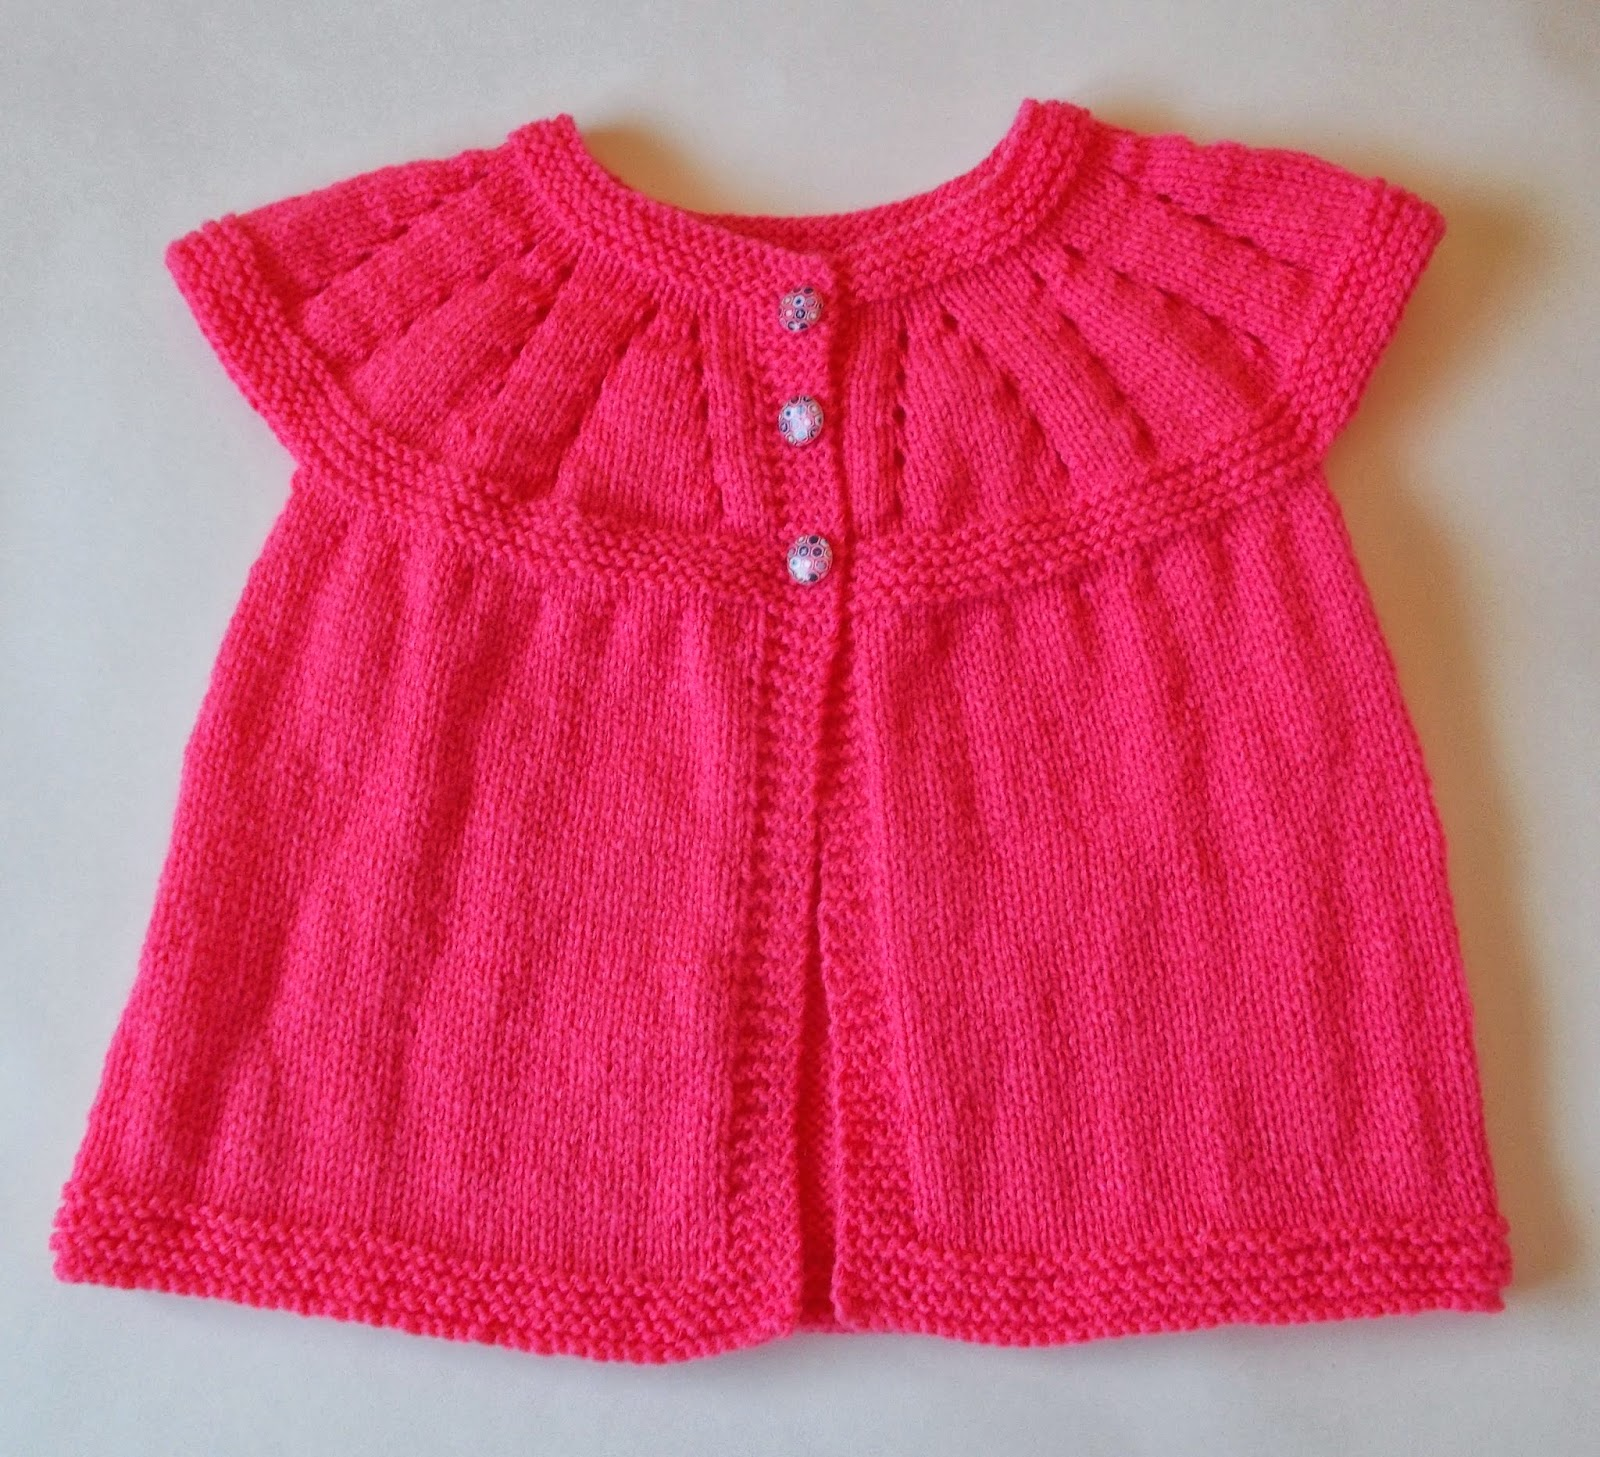 Free Knitting Patterns For Girls Jackets : mariannas lazy daisy days: Mariannas All-in-One ...